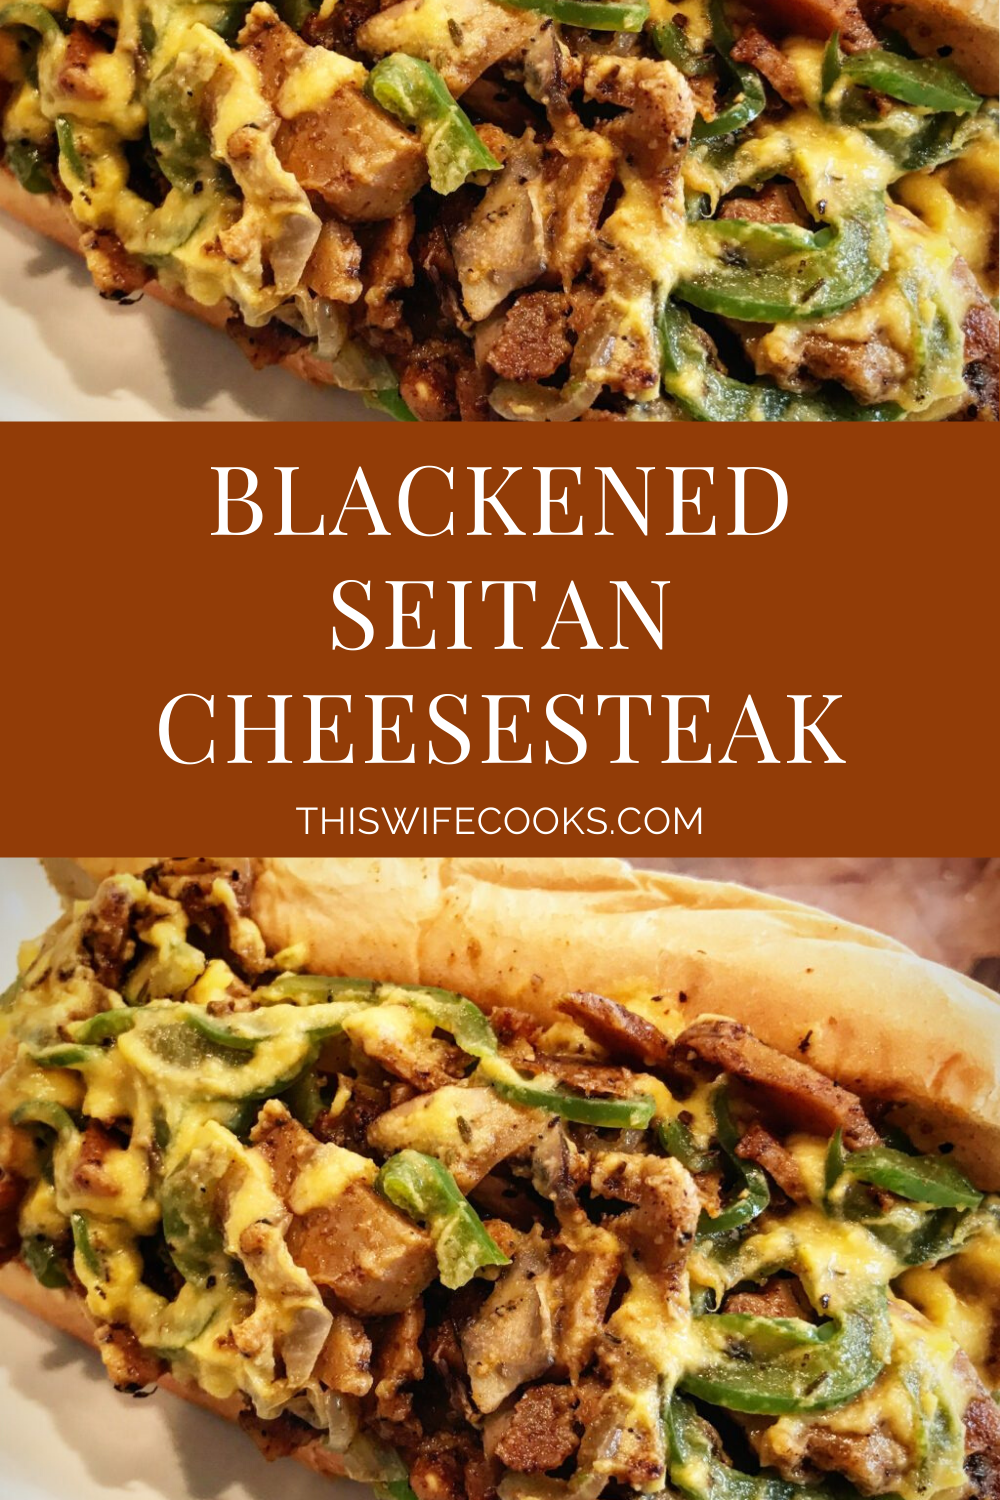 Blackened Seitan Philly Cheesesteak - Big, bold, & packed with robust flavor - this is a vegan cheesesteak experience worthy of the City of Brotherly Love!